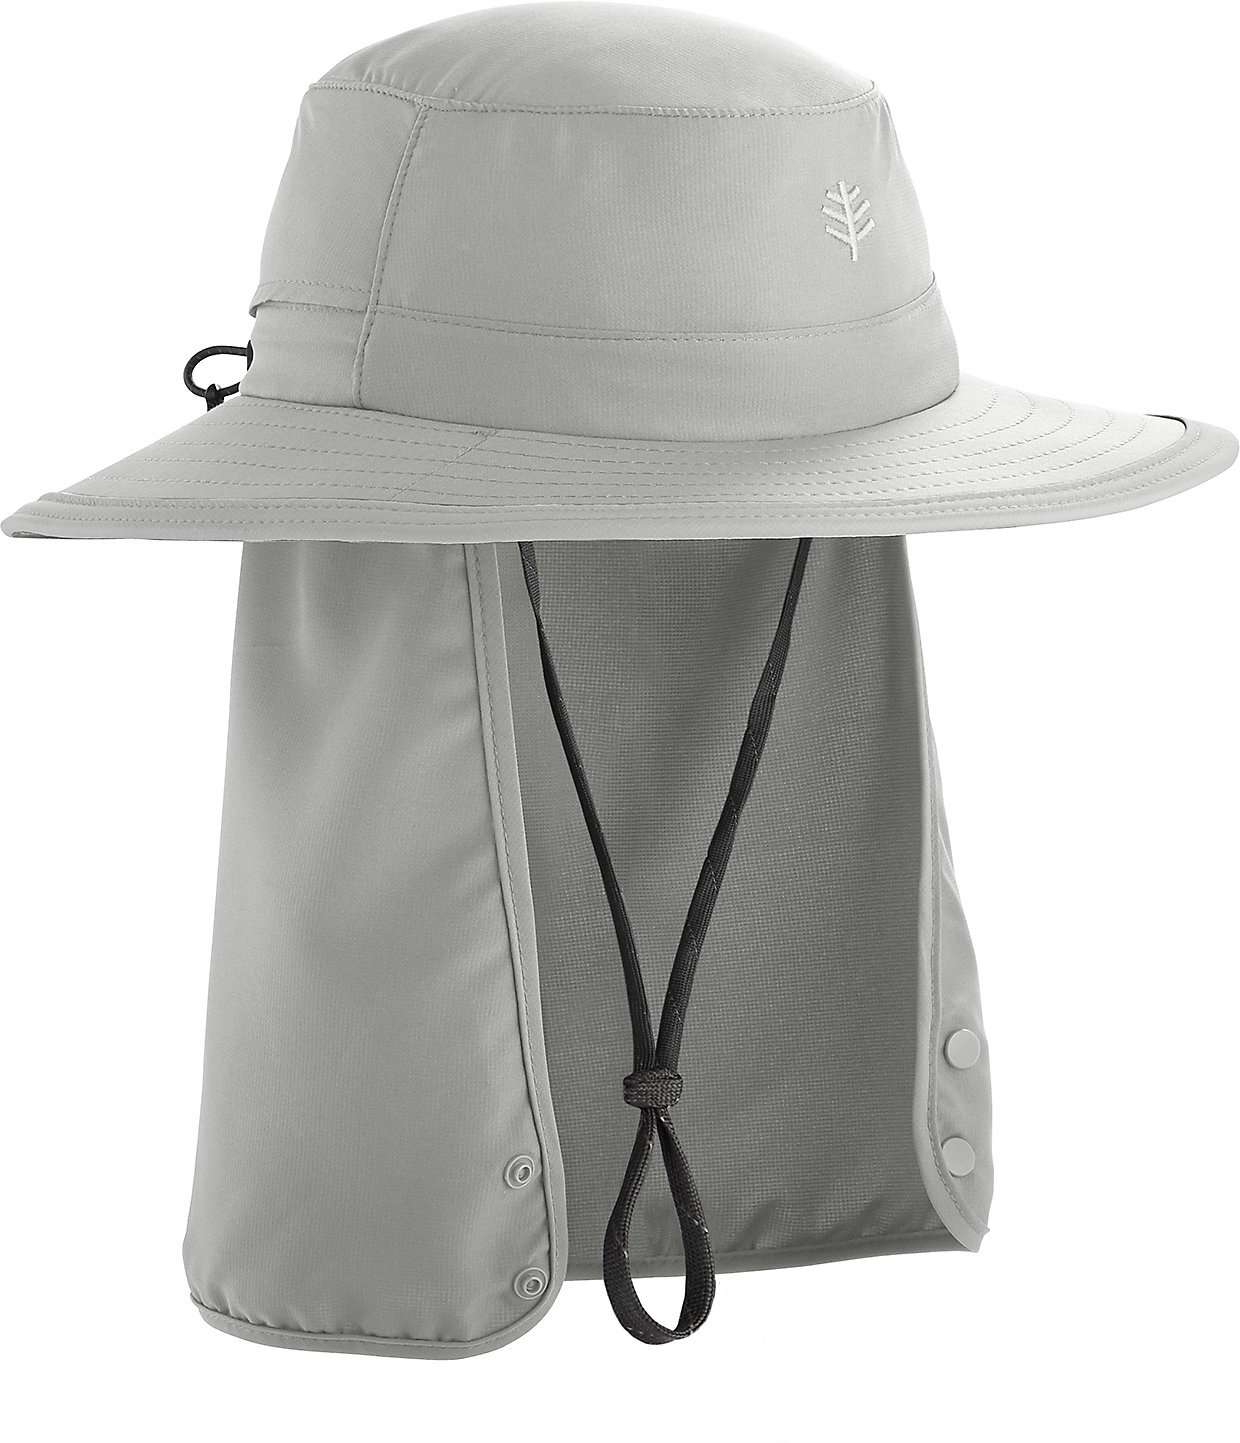 Coolibar UPF 50+ Kids' Convertible Boating Hat - Sun Protective (Small/Medium- Light Grey) by Coolibar